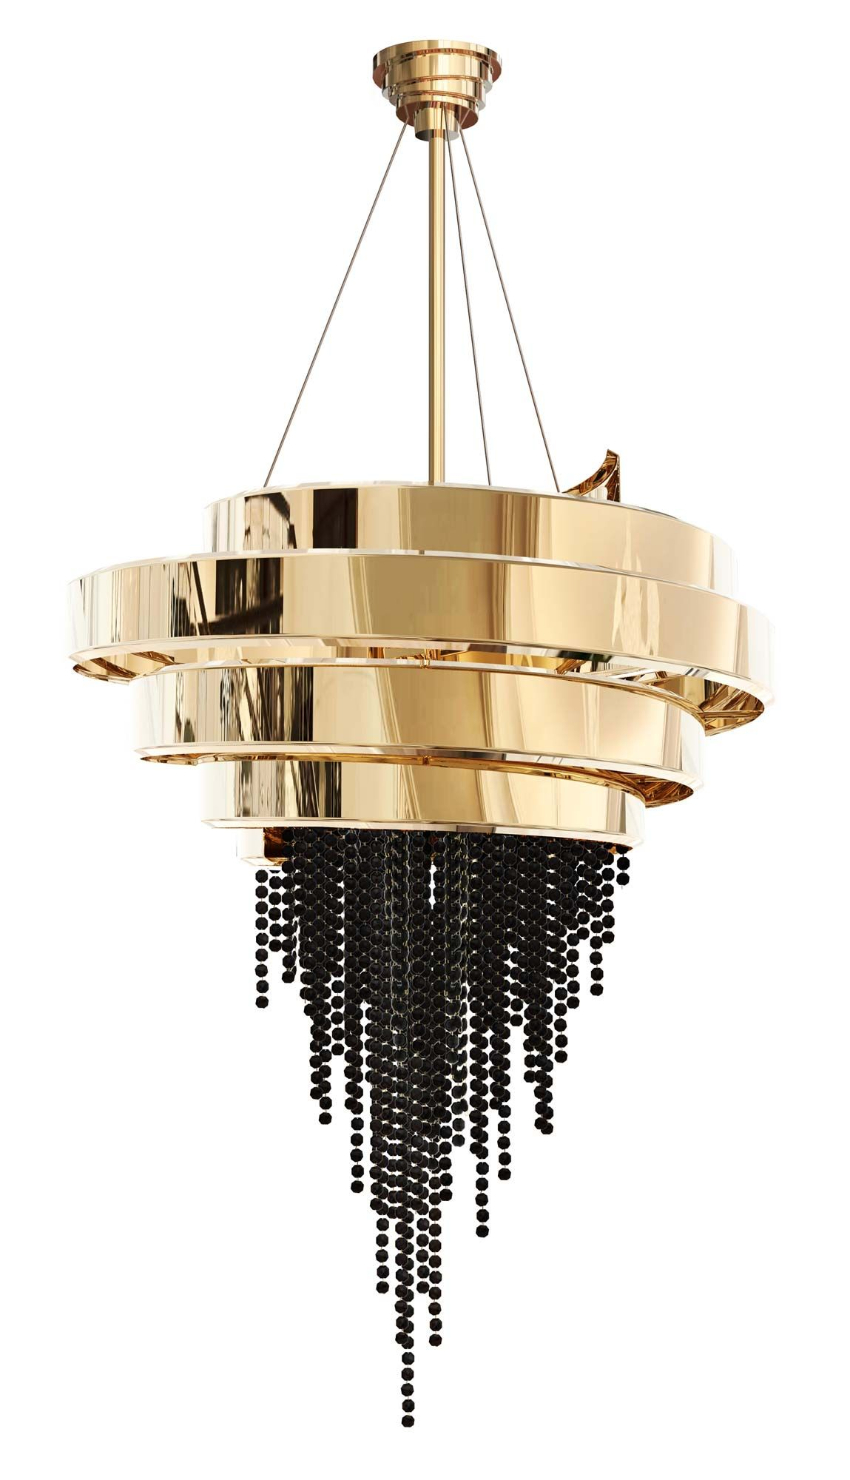 25 Modern Chandeliers That Will Make A Striking Impact modern chandelier 25 Modern Chandeliers For An Art-Filled Home e4458d1ad5e2d15fb025f6765696d4c5 1